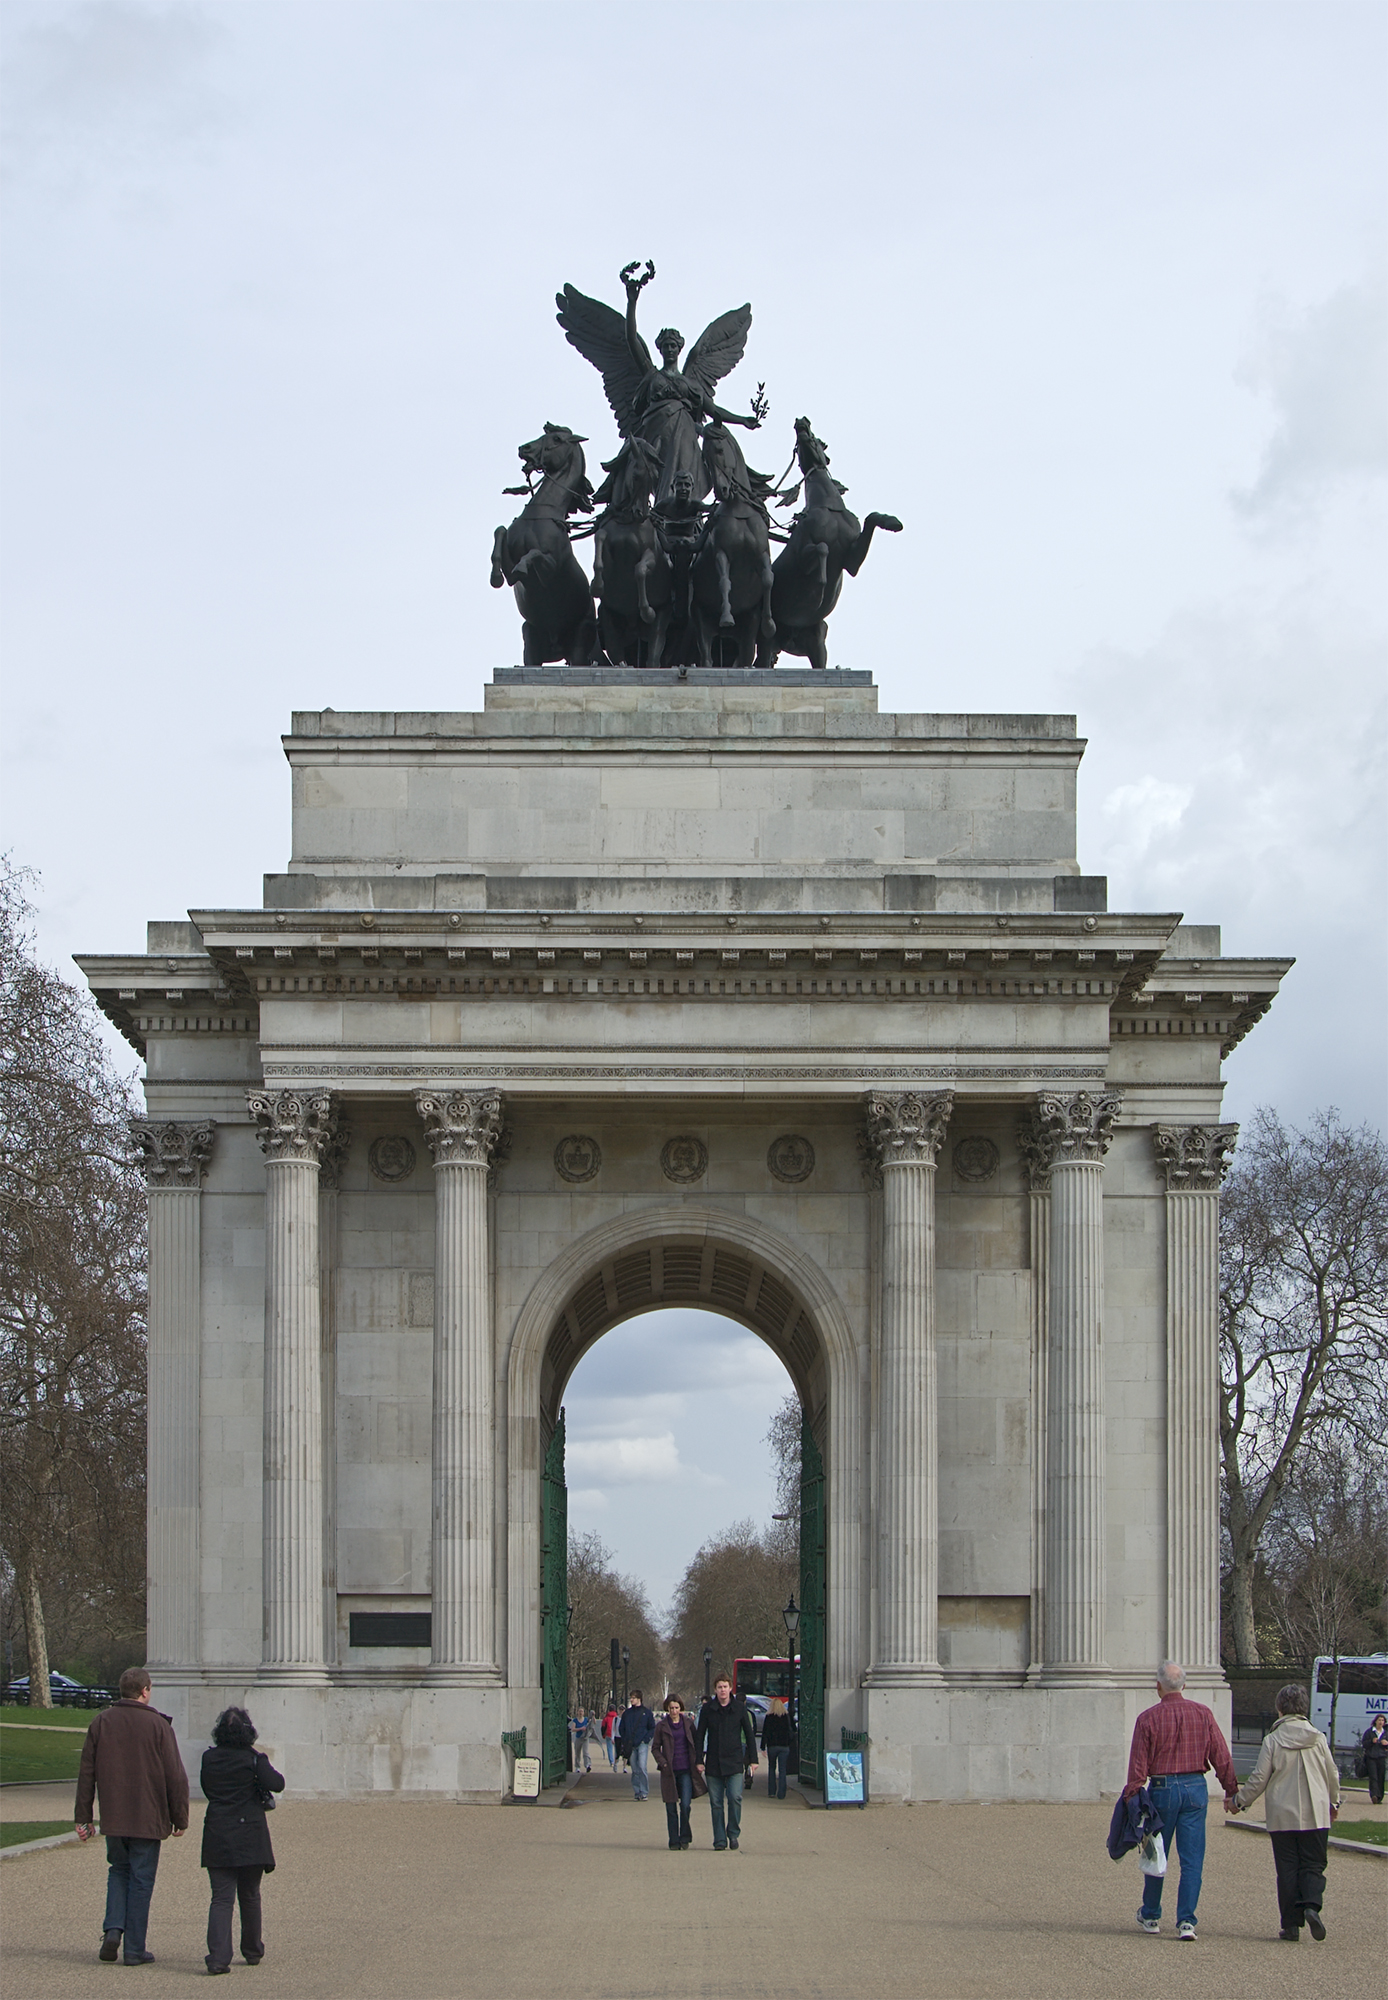 https://i2.wp.com/upload.wikimedia.org/wikipedia/commons/1/12/Wellingtonarch2008.jpg